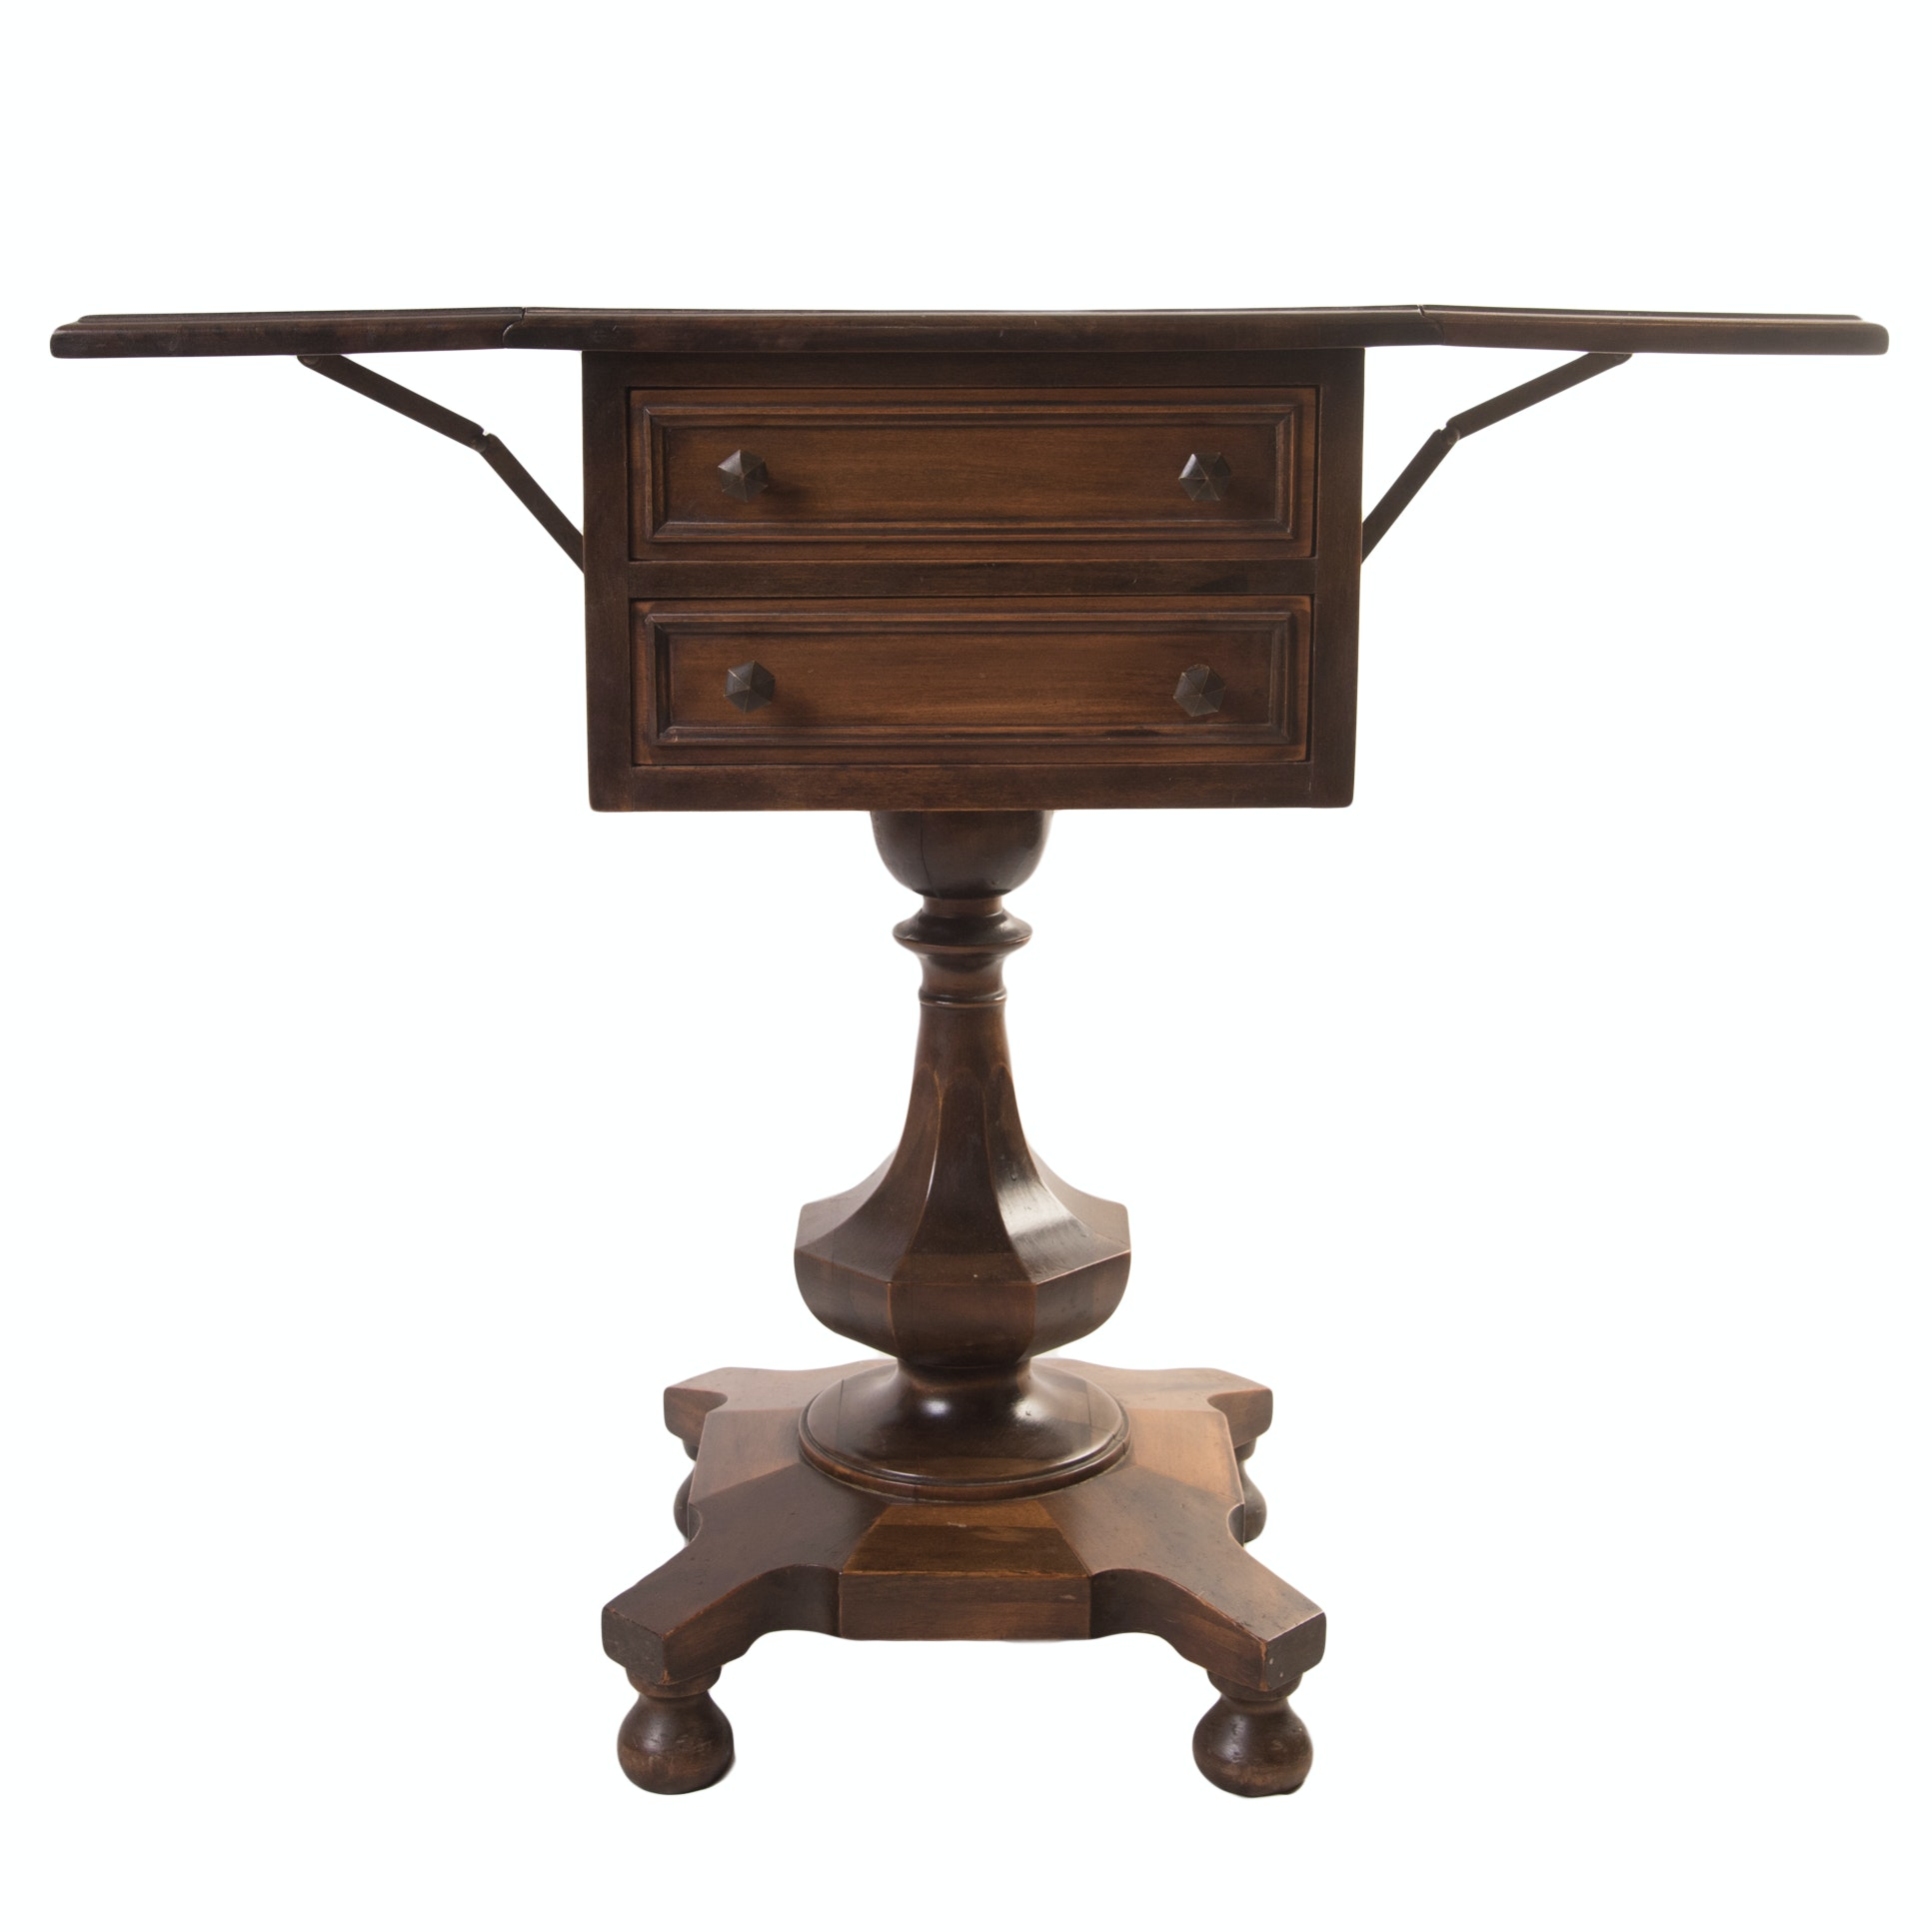 Vintage Empire Style Sewing Stand